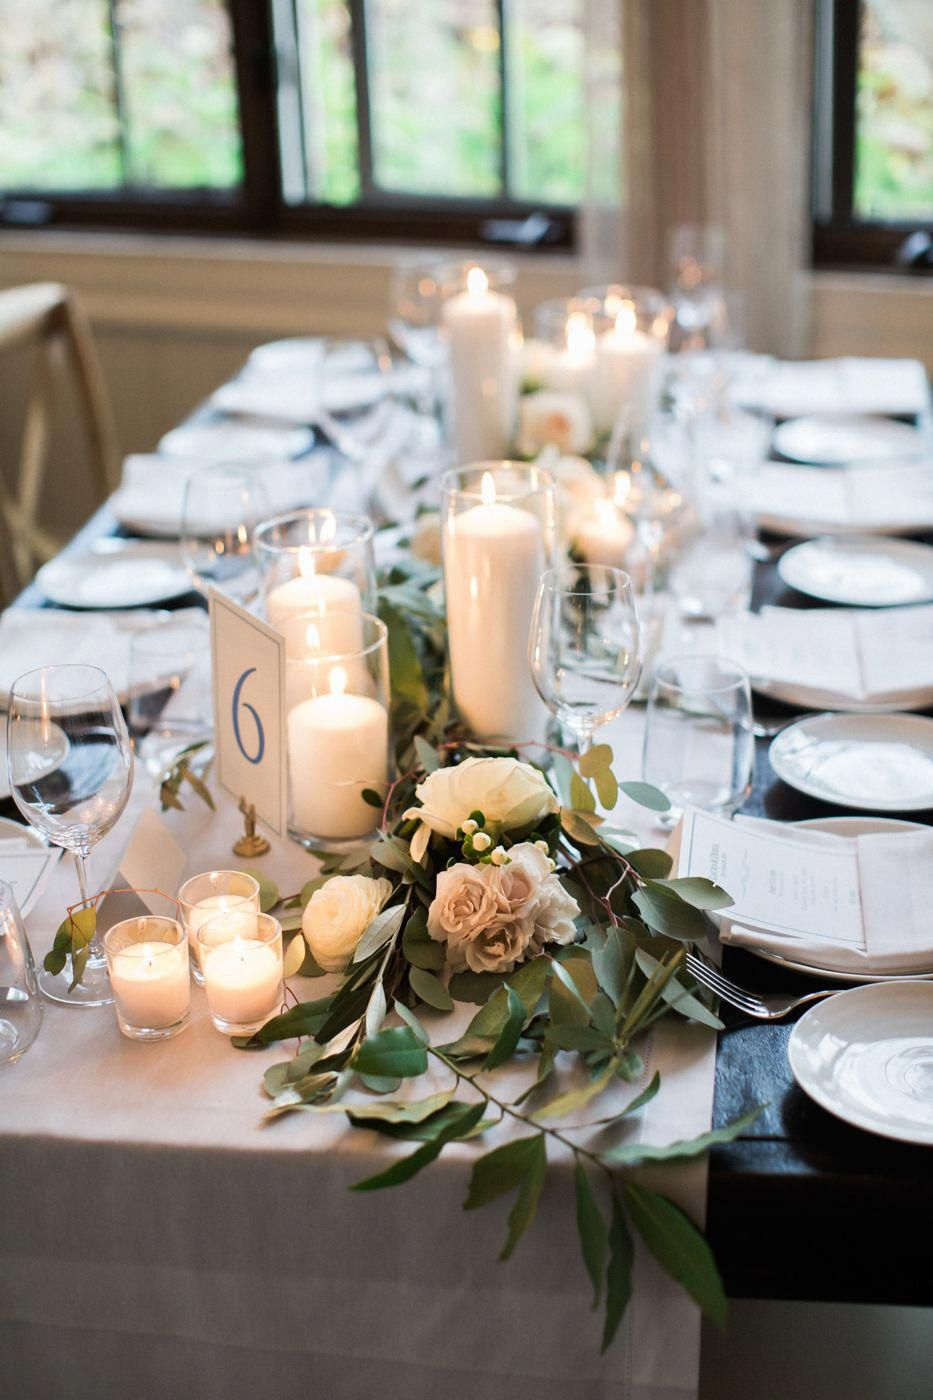 Charming Candlelit Wedding Table Decor Blue New Bedford Inn Fall